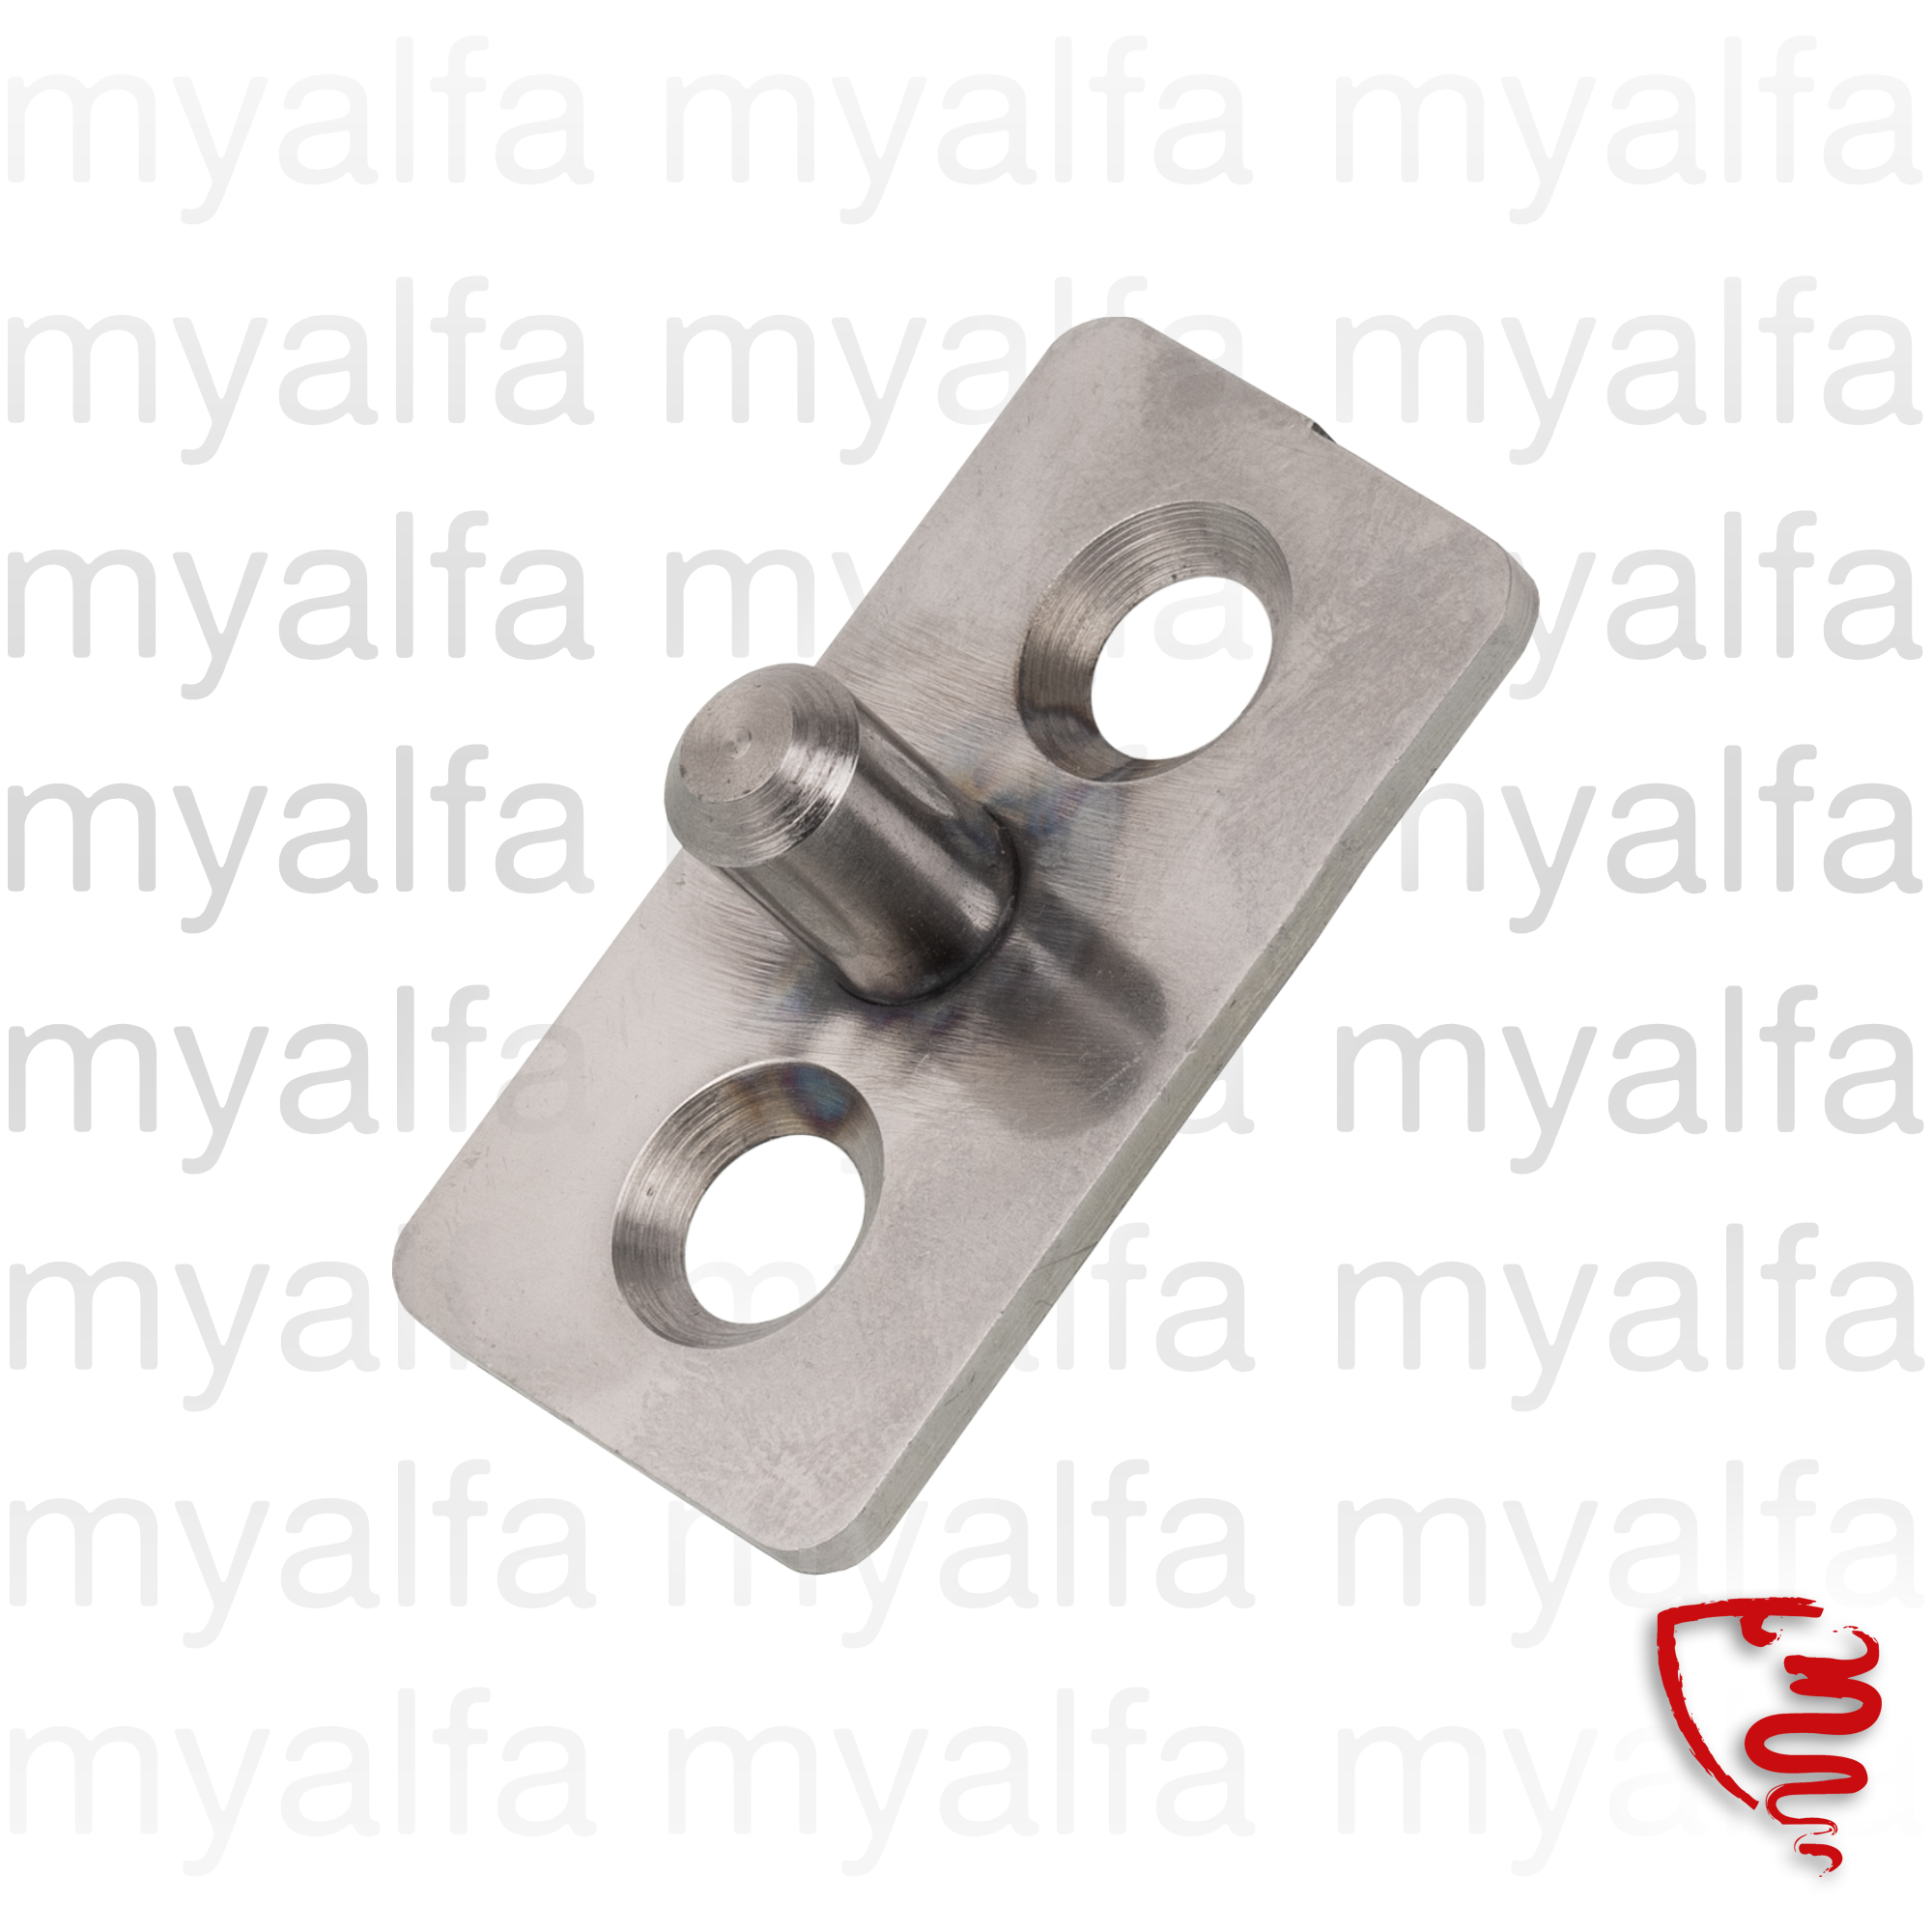 trunk latch holder Spider 750/101 for 750/101, Spider, Body parts, Panels, Rear